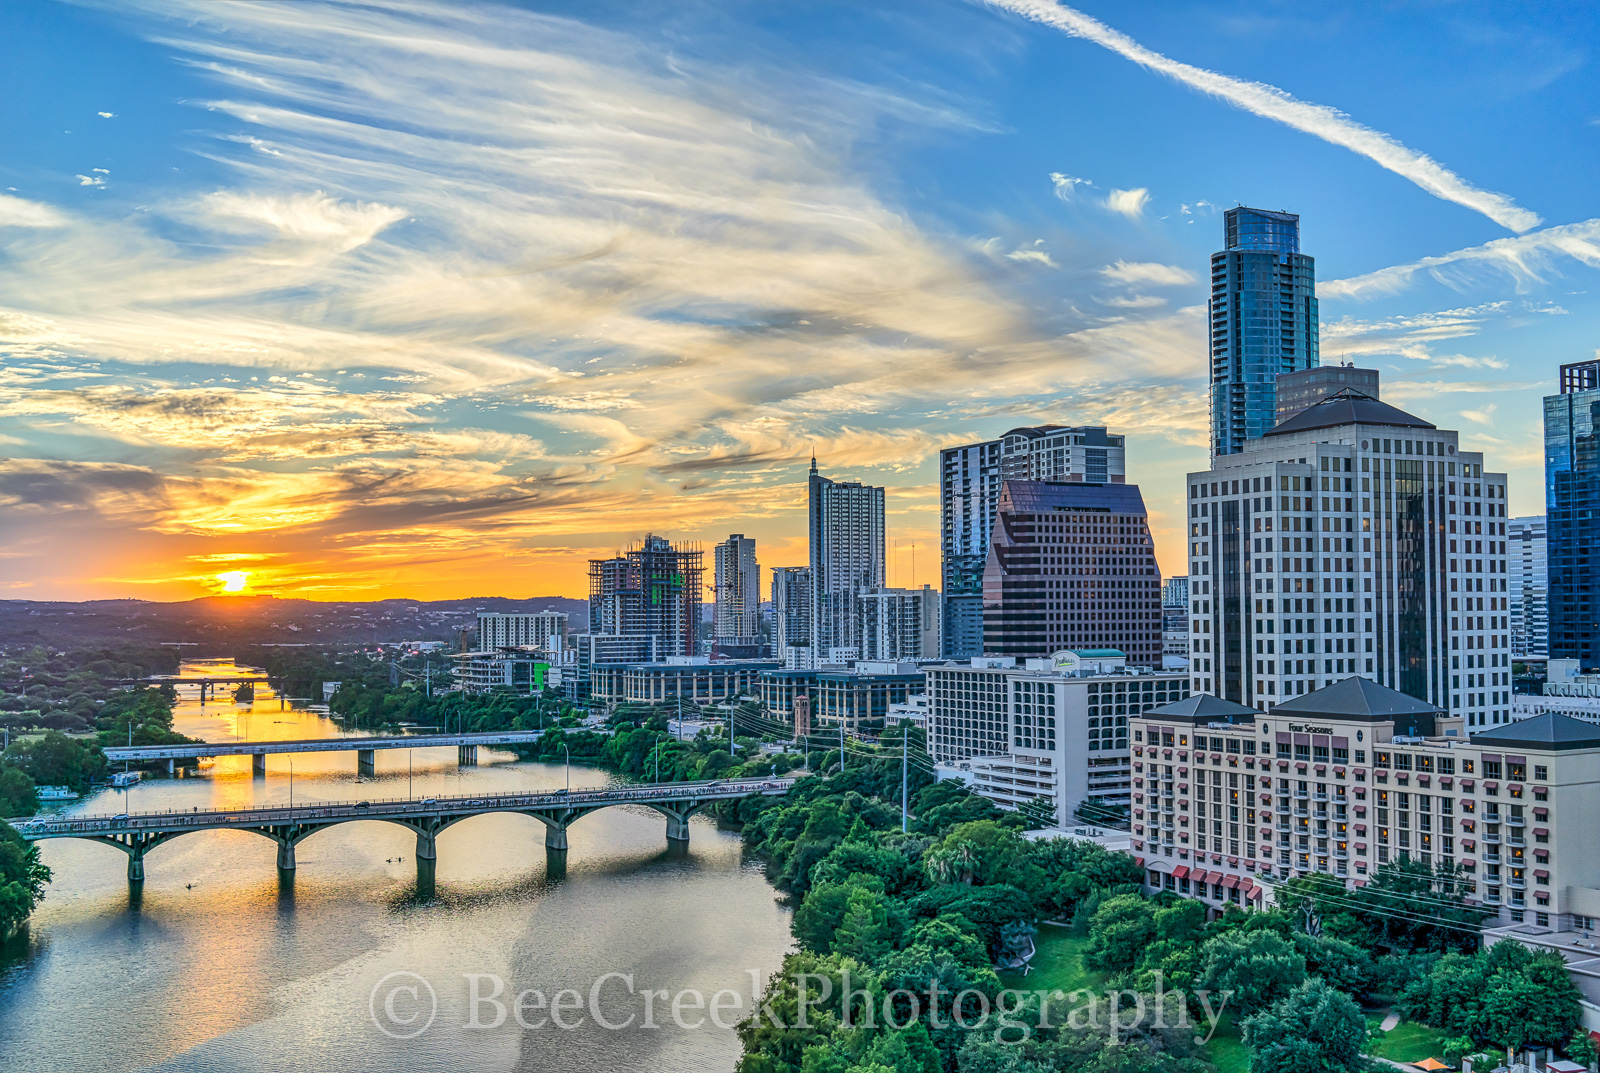 Austin Sunset Skyline Above, aerial, over austin, Austonian, Congress bridge, First Street Bridge, Four Seasons hotel, Lamar bridge, Radison hotel along the shoreline, aerial, cityscape, downtown, sky, photo